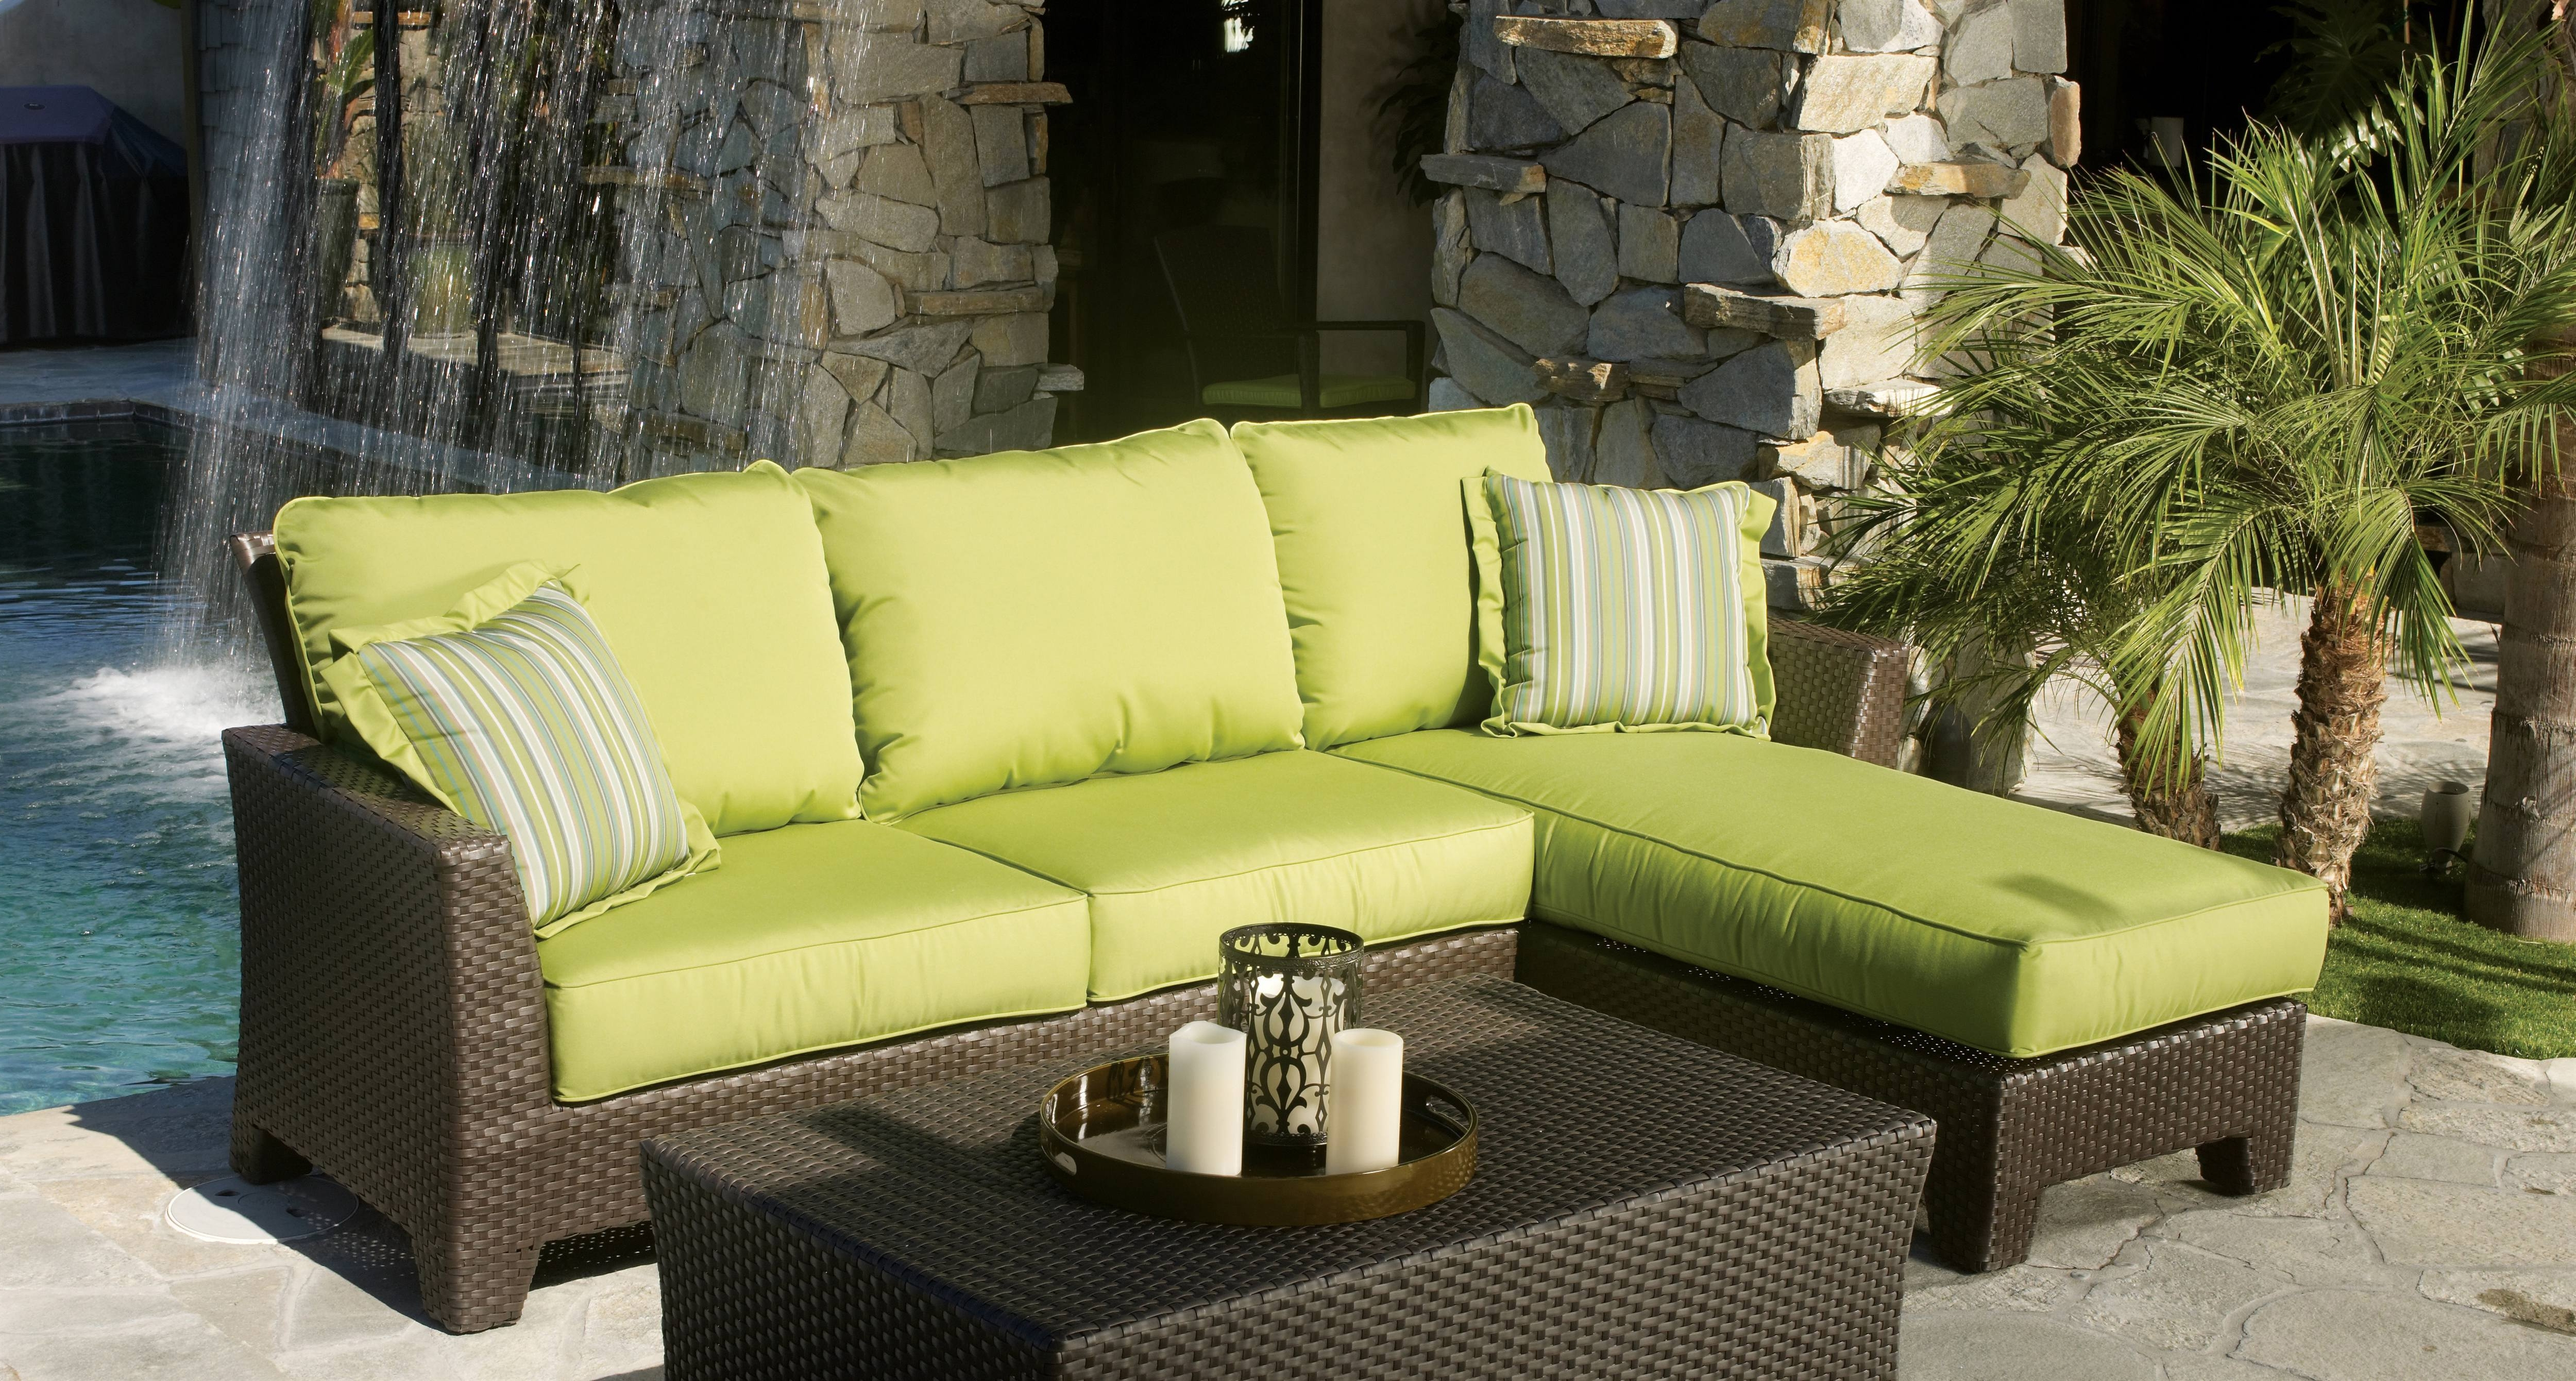 2017 Green Sectional Sofas With Chaise Inside Lime Green Sectional Sofa – Hotelsbacau (View 1 of 15)